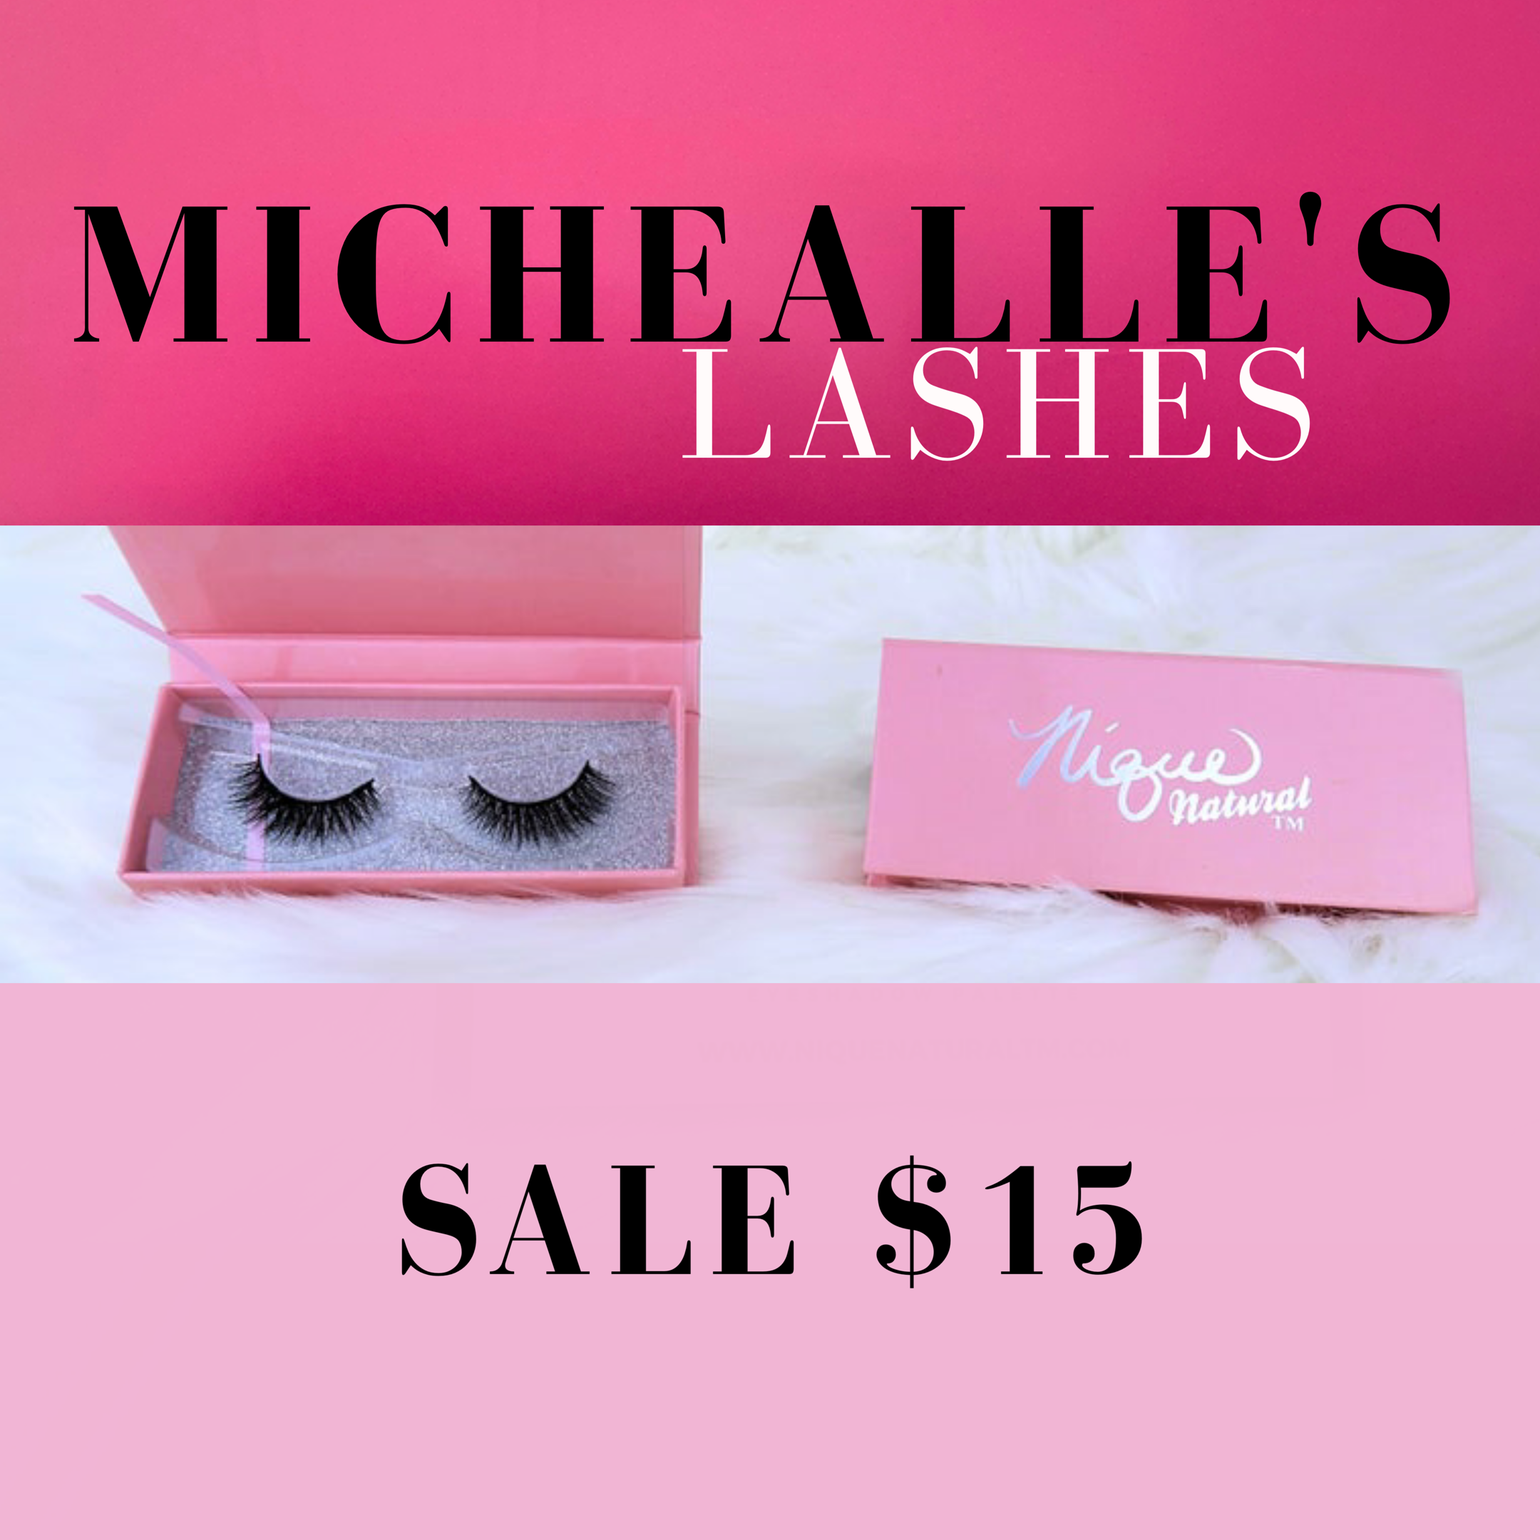 Image of MICHEALLE'S LASHES